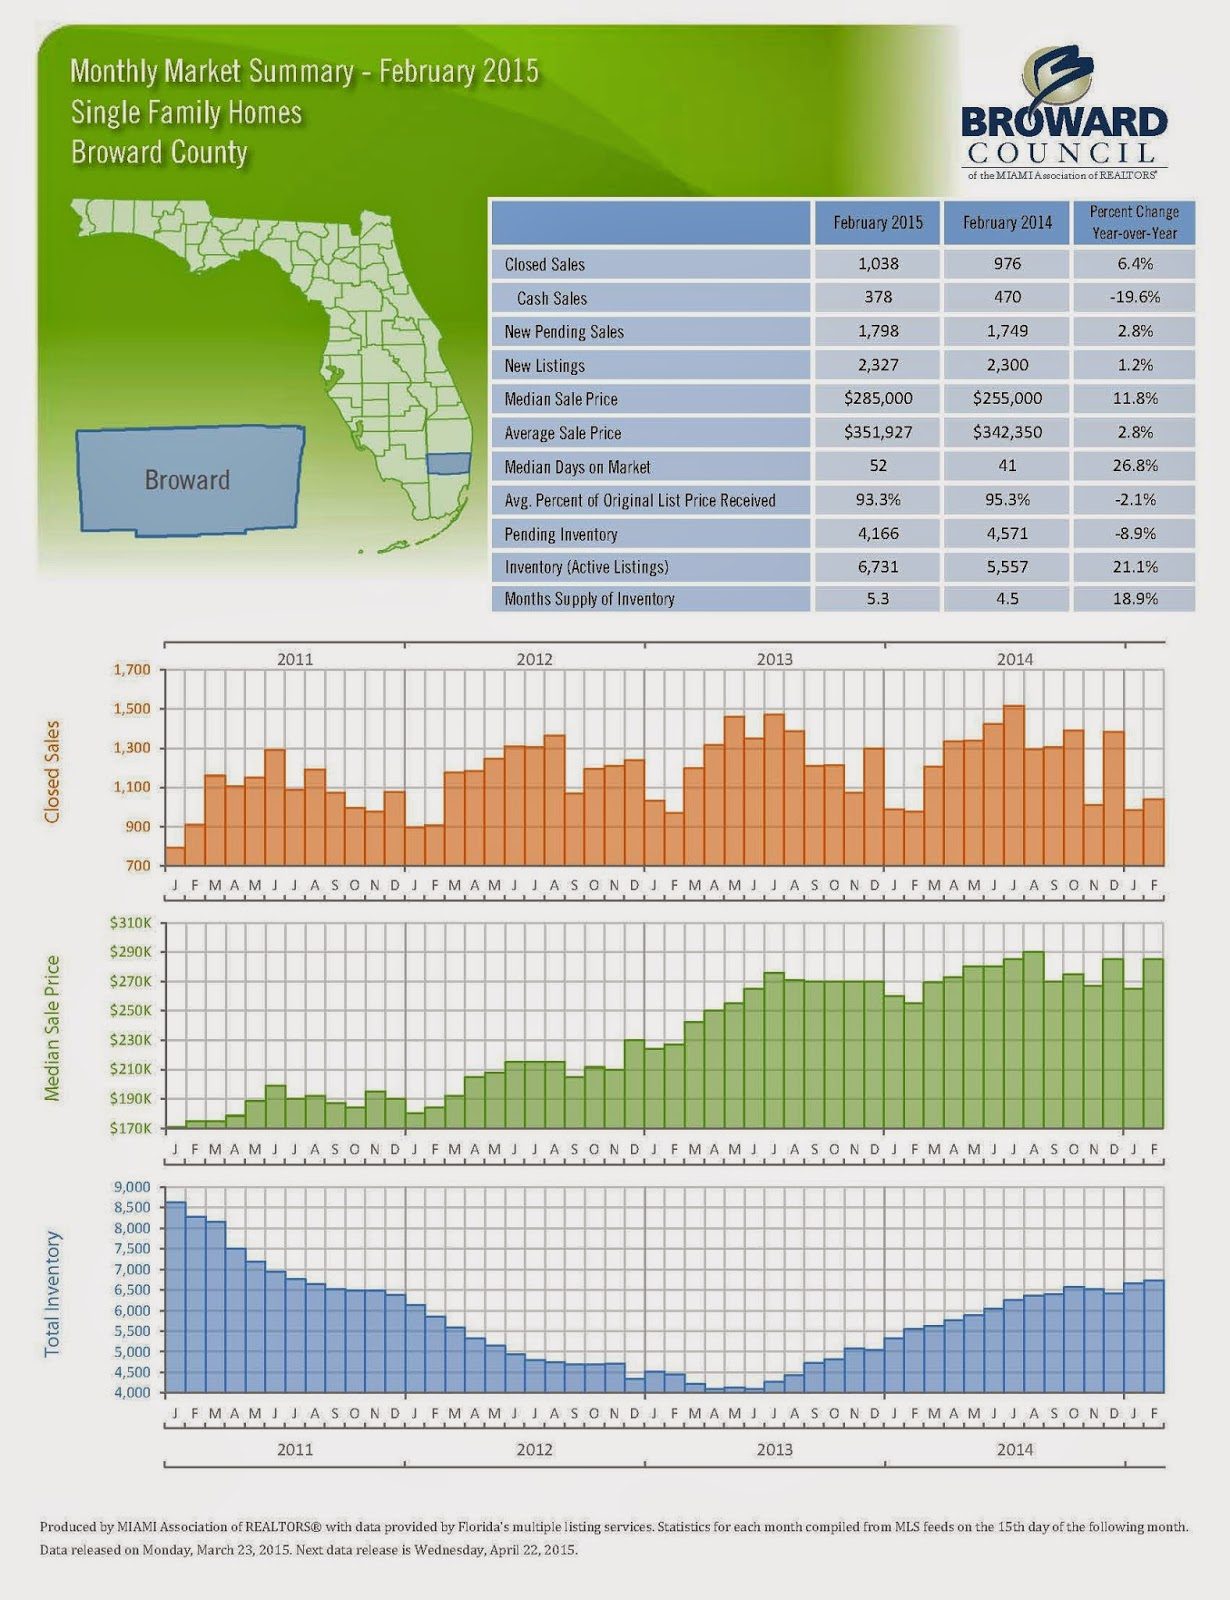 Monthly Market Summary February 2015 Broward County FL